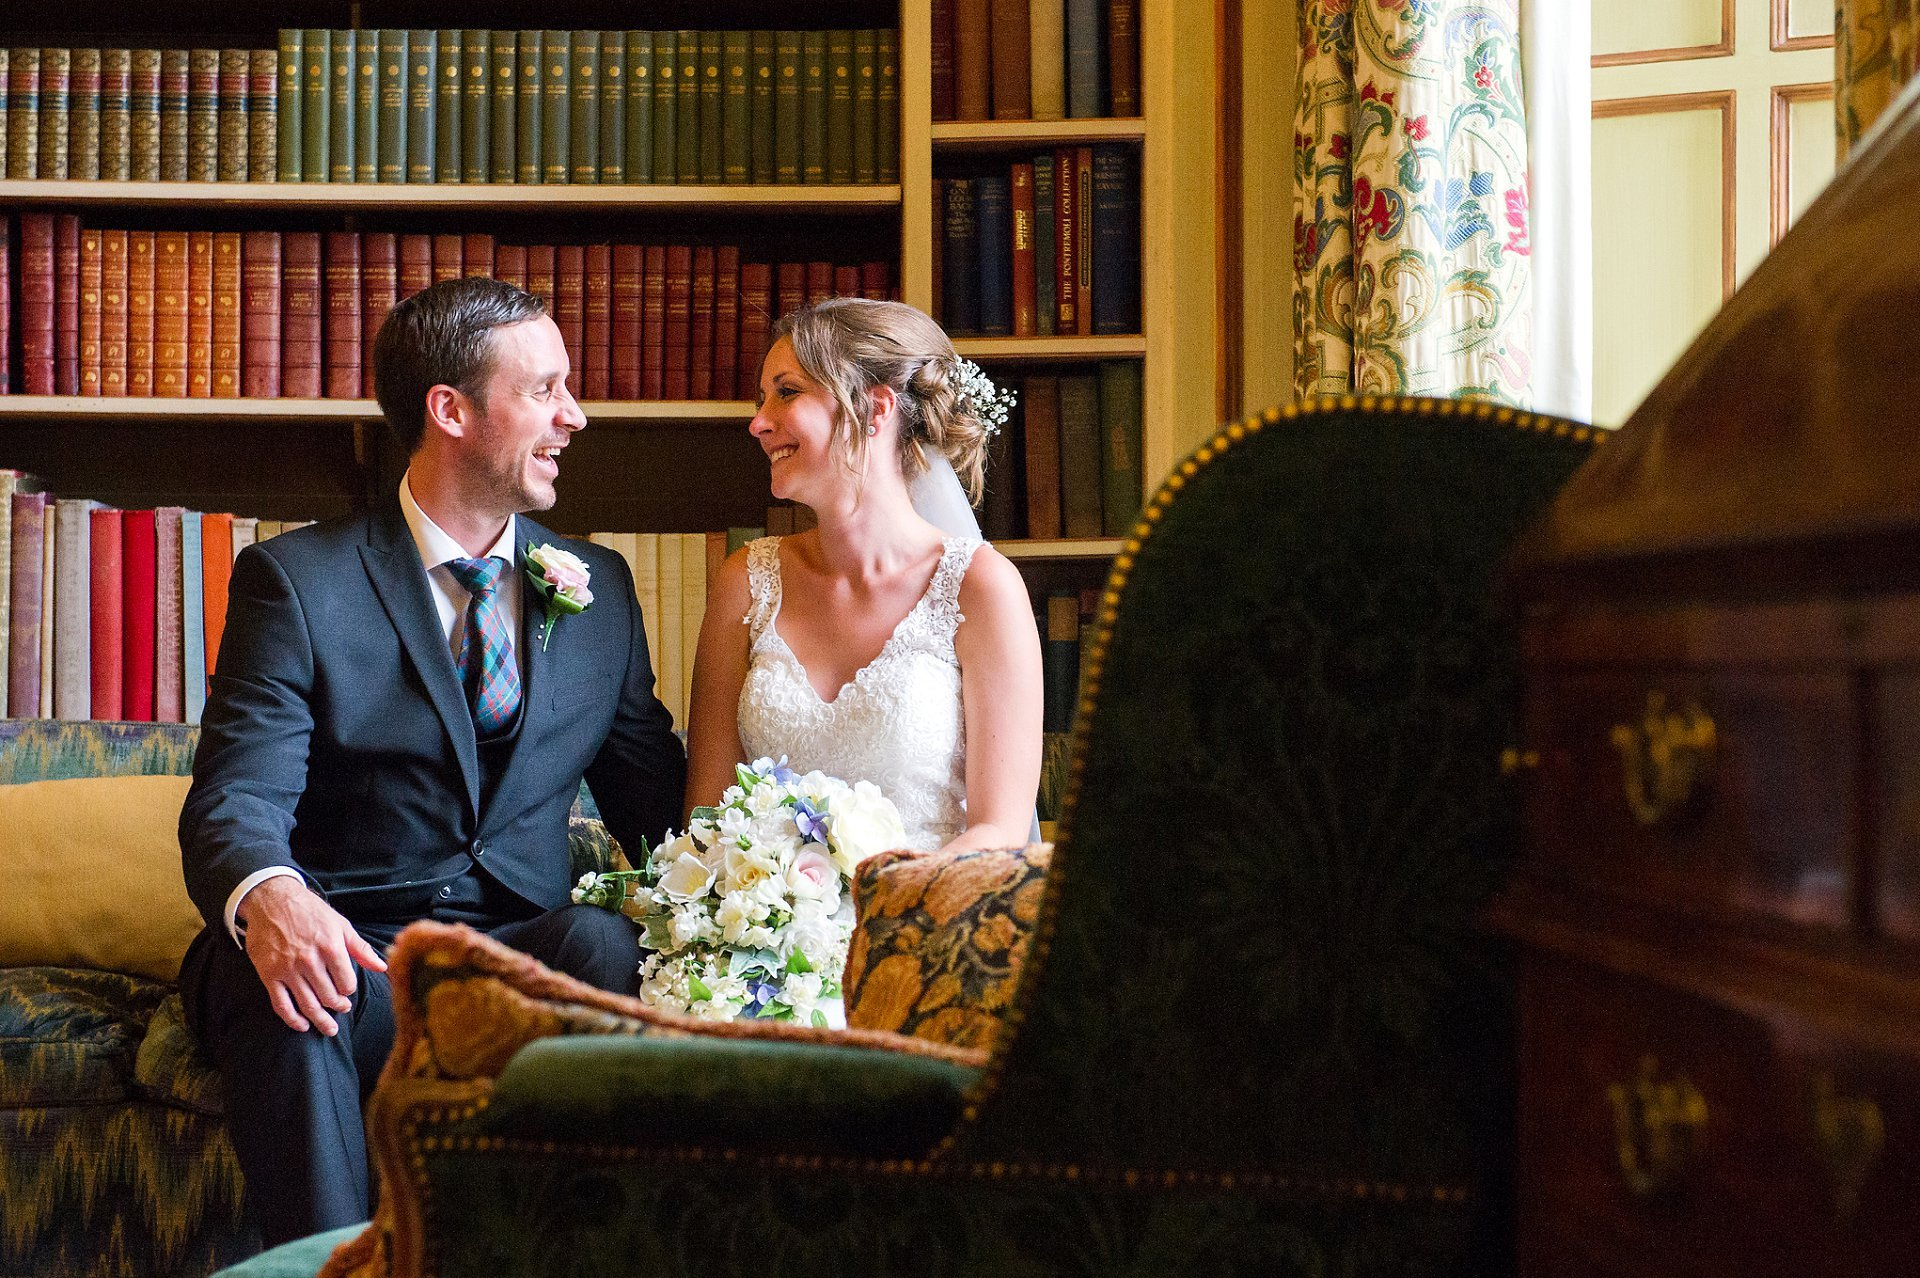 Leeds Castle wedding photographer with the happy couple sitting in the Library, laughing, as their guests take their seats for dinner in the Henry VIII Banqueting Hall. Emma Duggan specialises in small, initmate weddings througout Kent and the south East with coverage from as little as one hour